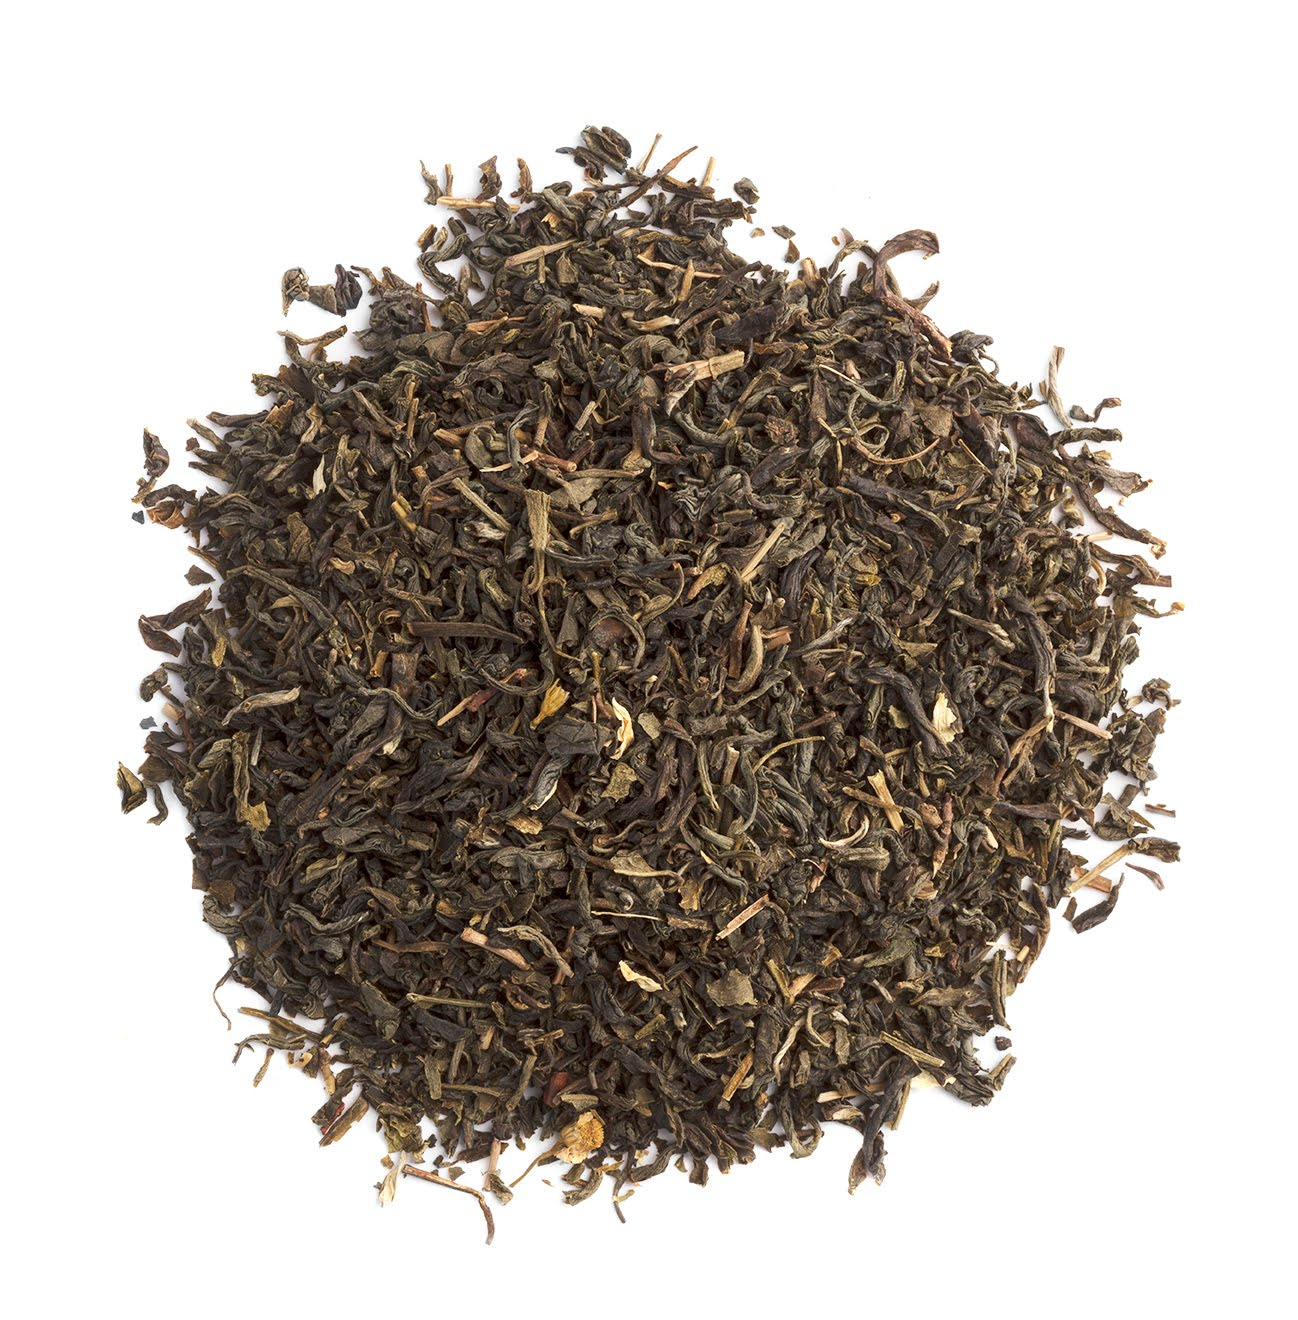 Best Selling Teas - Best Selling Loose Leaf Teas, Herbal Tisanes, & Tea Sampler Gift Sets - Heavenly Tea Leaves